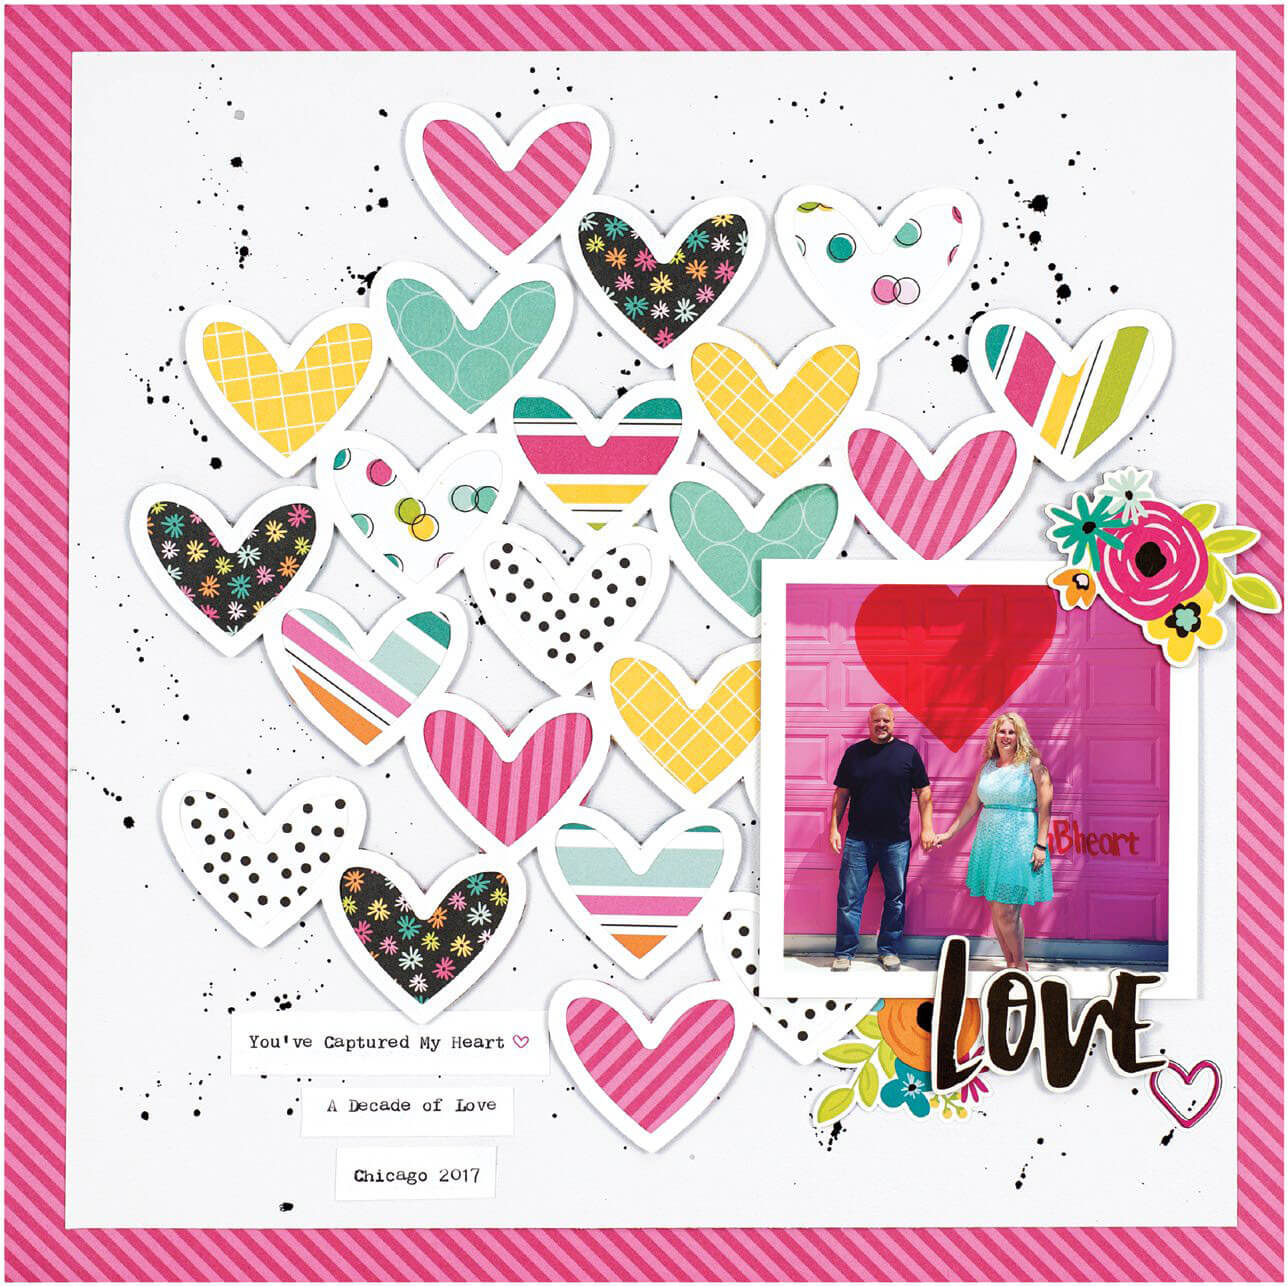 Scrapbook & Cards Today - Winter 2019 - Love layout by Ali Skifton